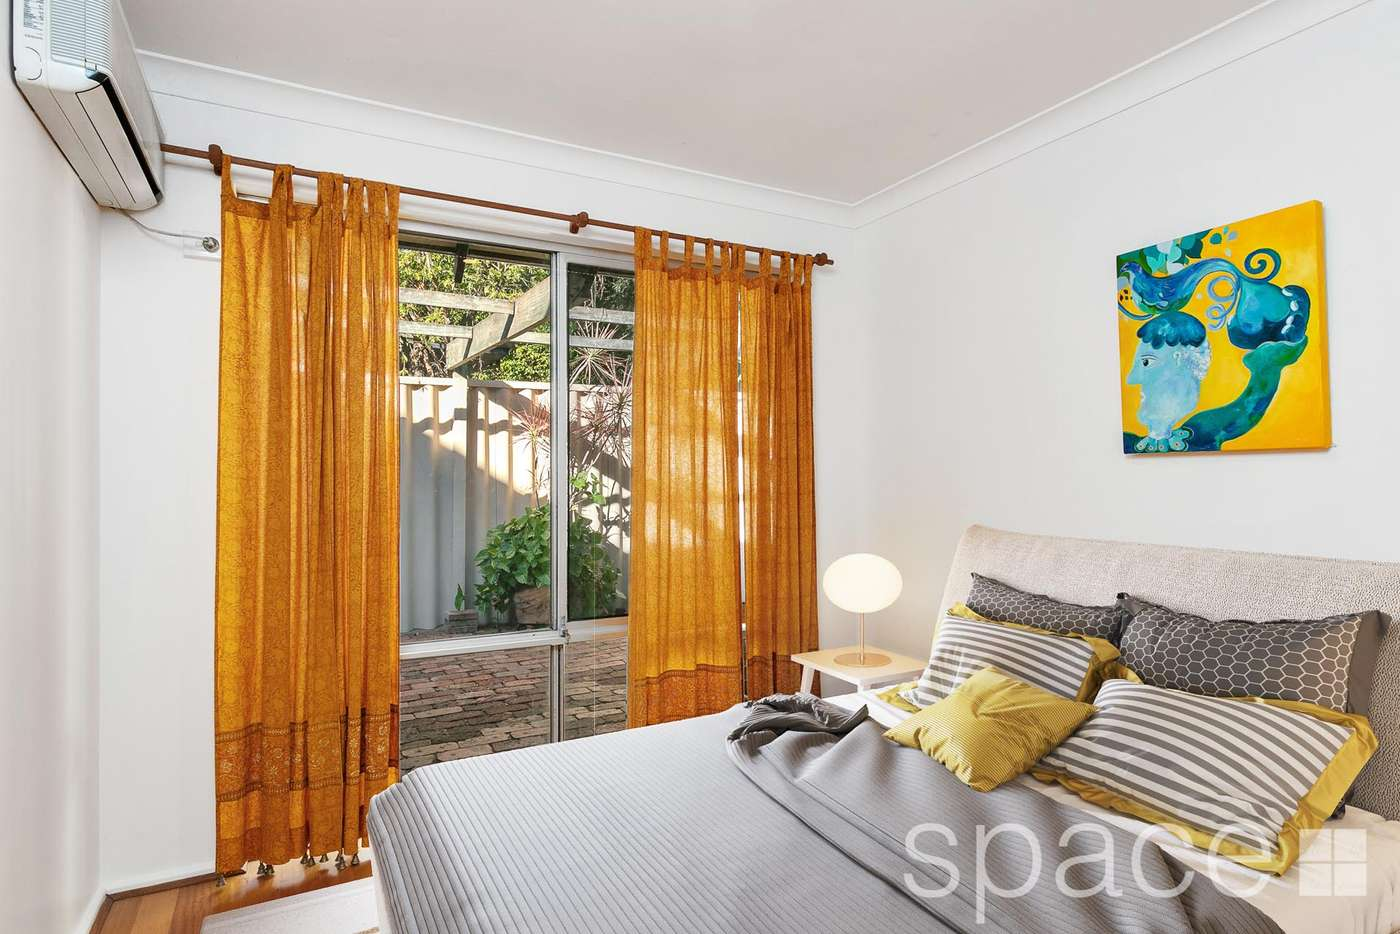 Seventh view of Homely house listing, 2a Commercial Road, Shenton Park WA 6008